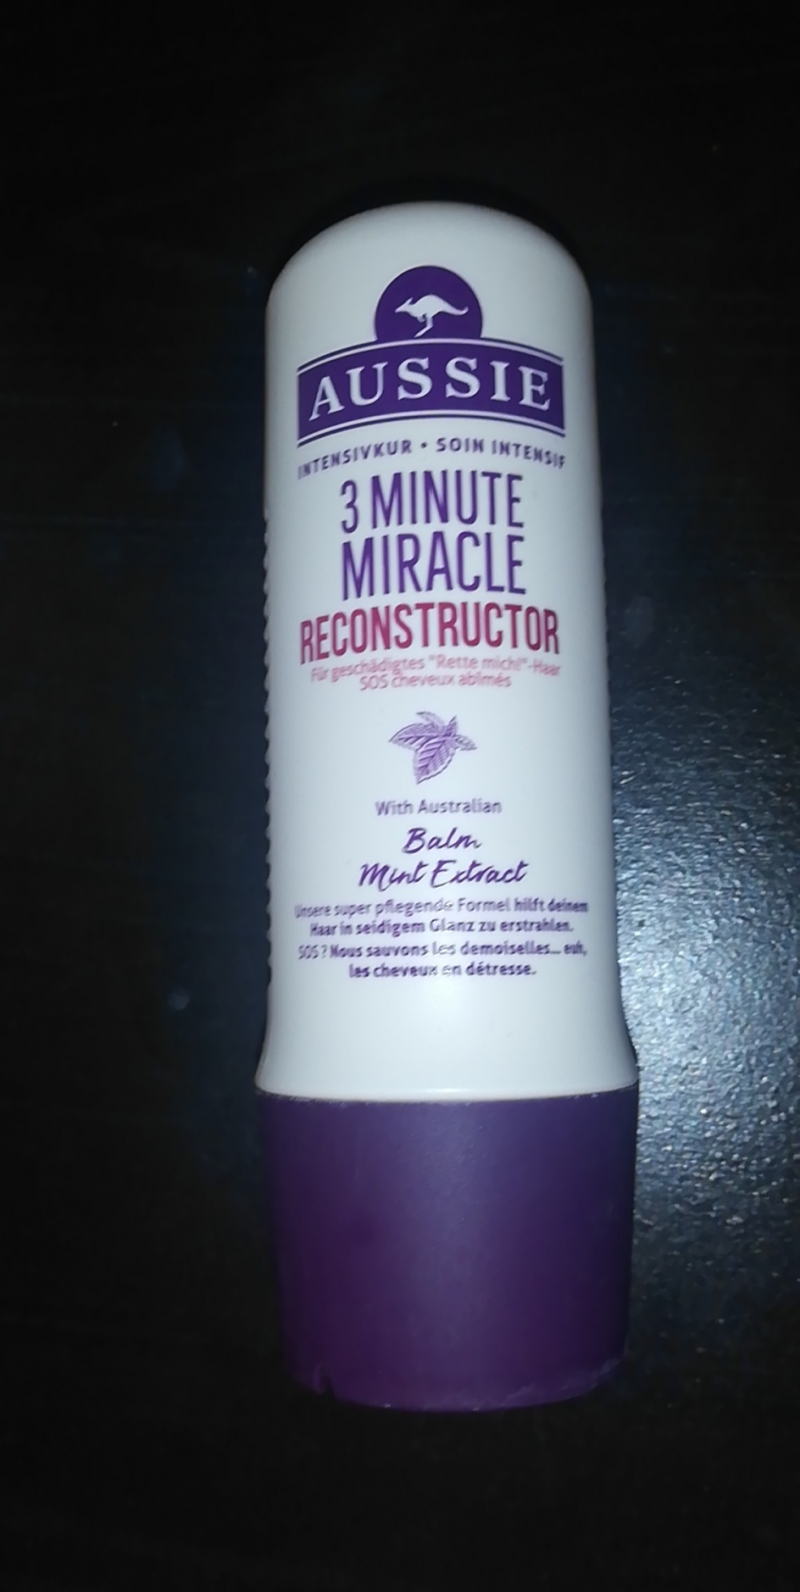 Swatch 3 Minute Miracle Reconstructor, Aussie